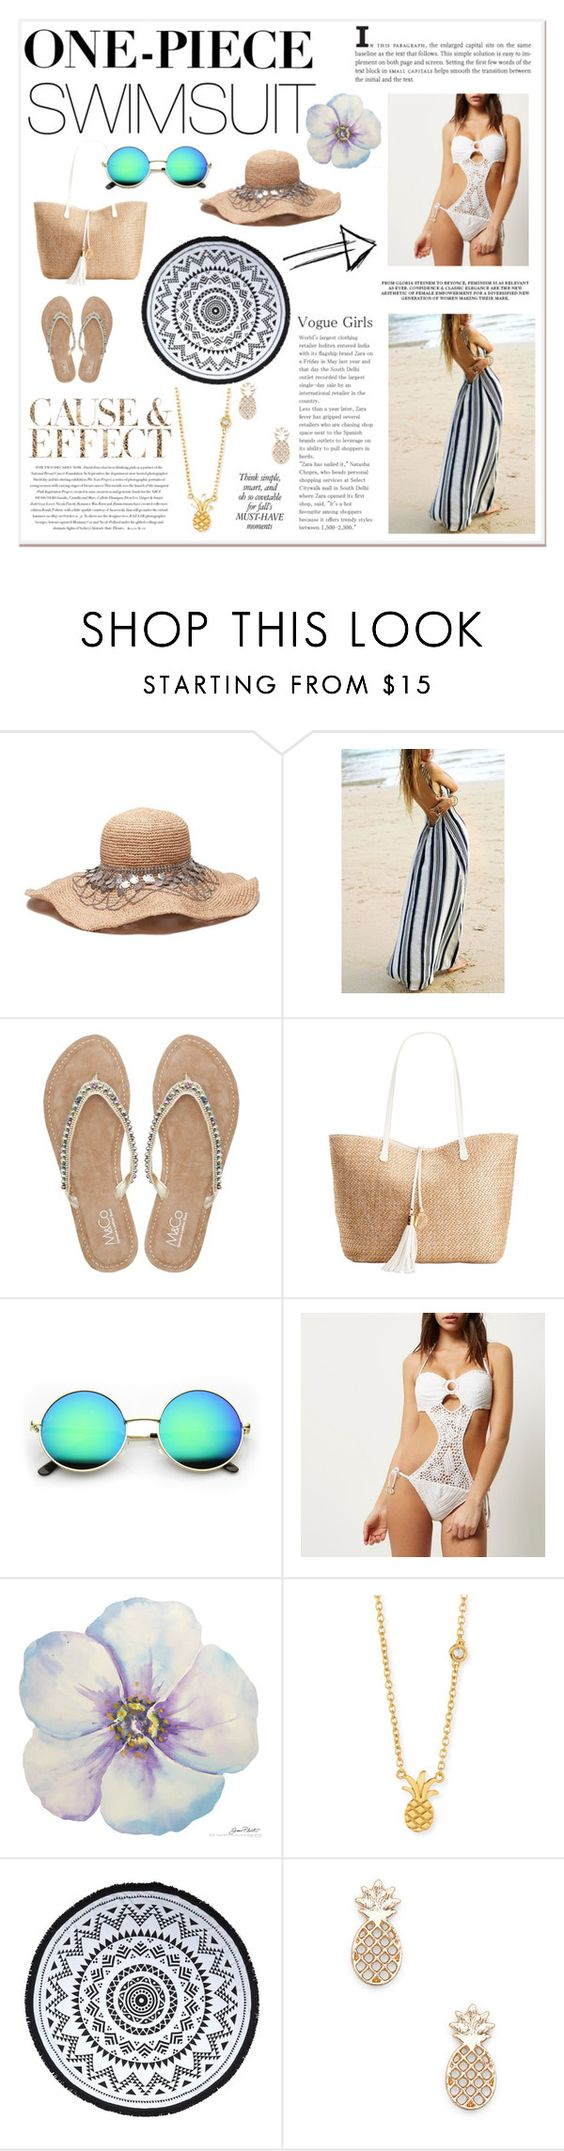 """""""One Piece Swimsuit"""" by nicoleta98c ❤ liked on Polyvore featuring M&Co, INC International Concepts, Envi, River Island, Sydney Evan, You, Me and the Dream, Sole Society and onepieceswimsuit"""